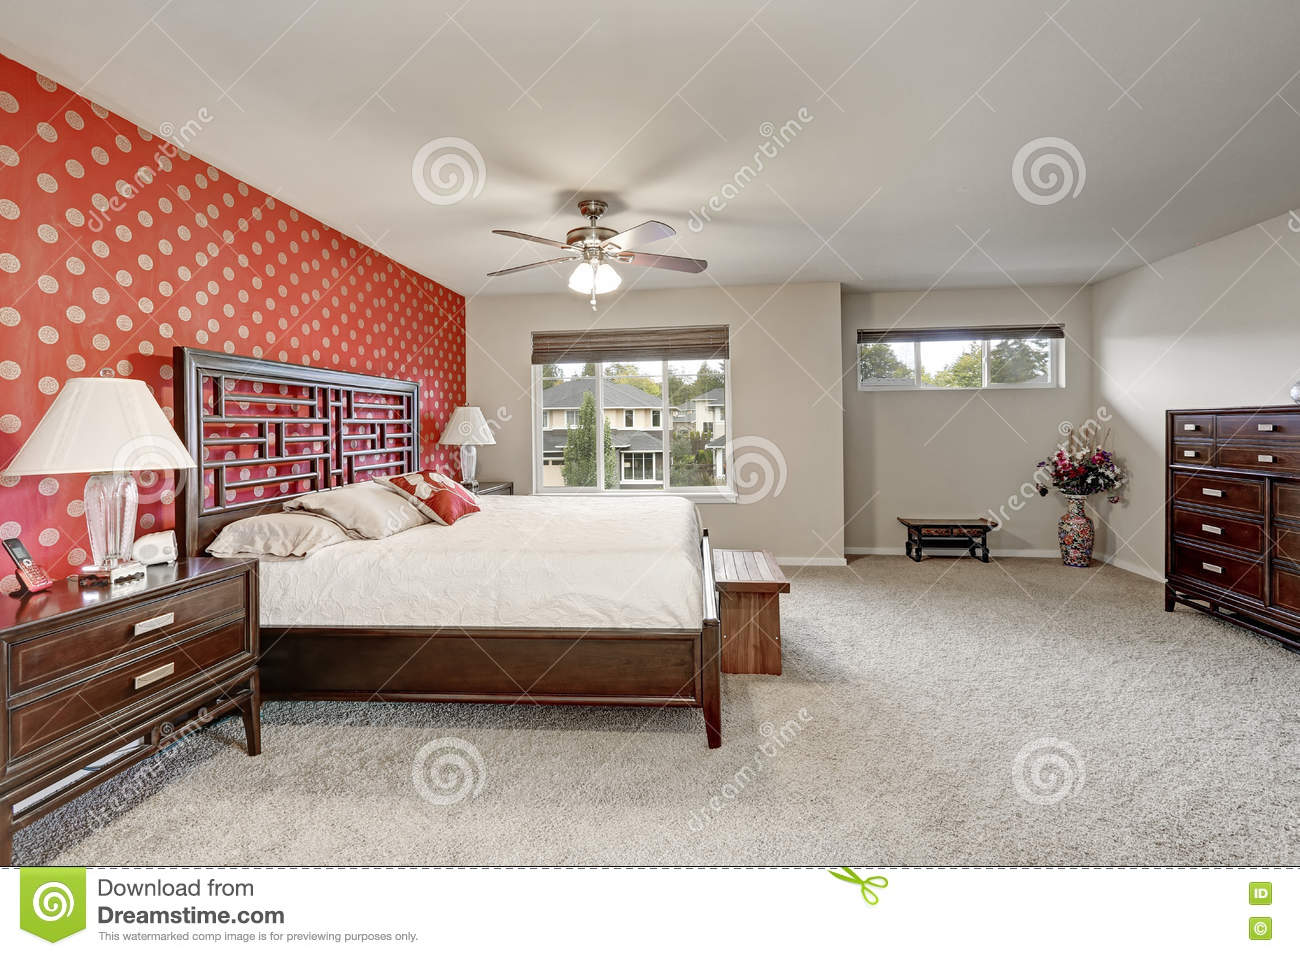 Master Bedroom Interior With Large Bed And Red Wall Stock Photo